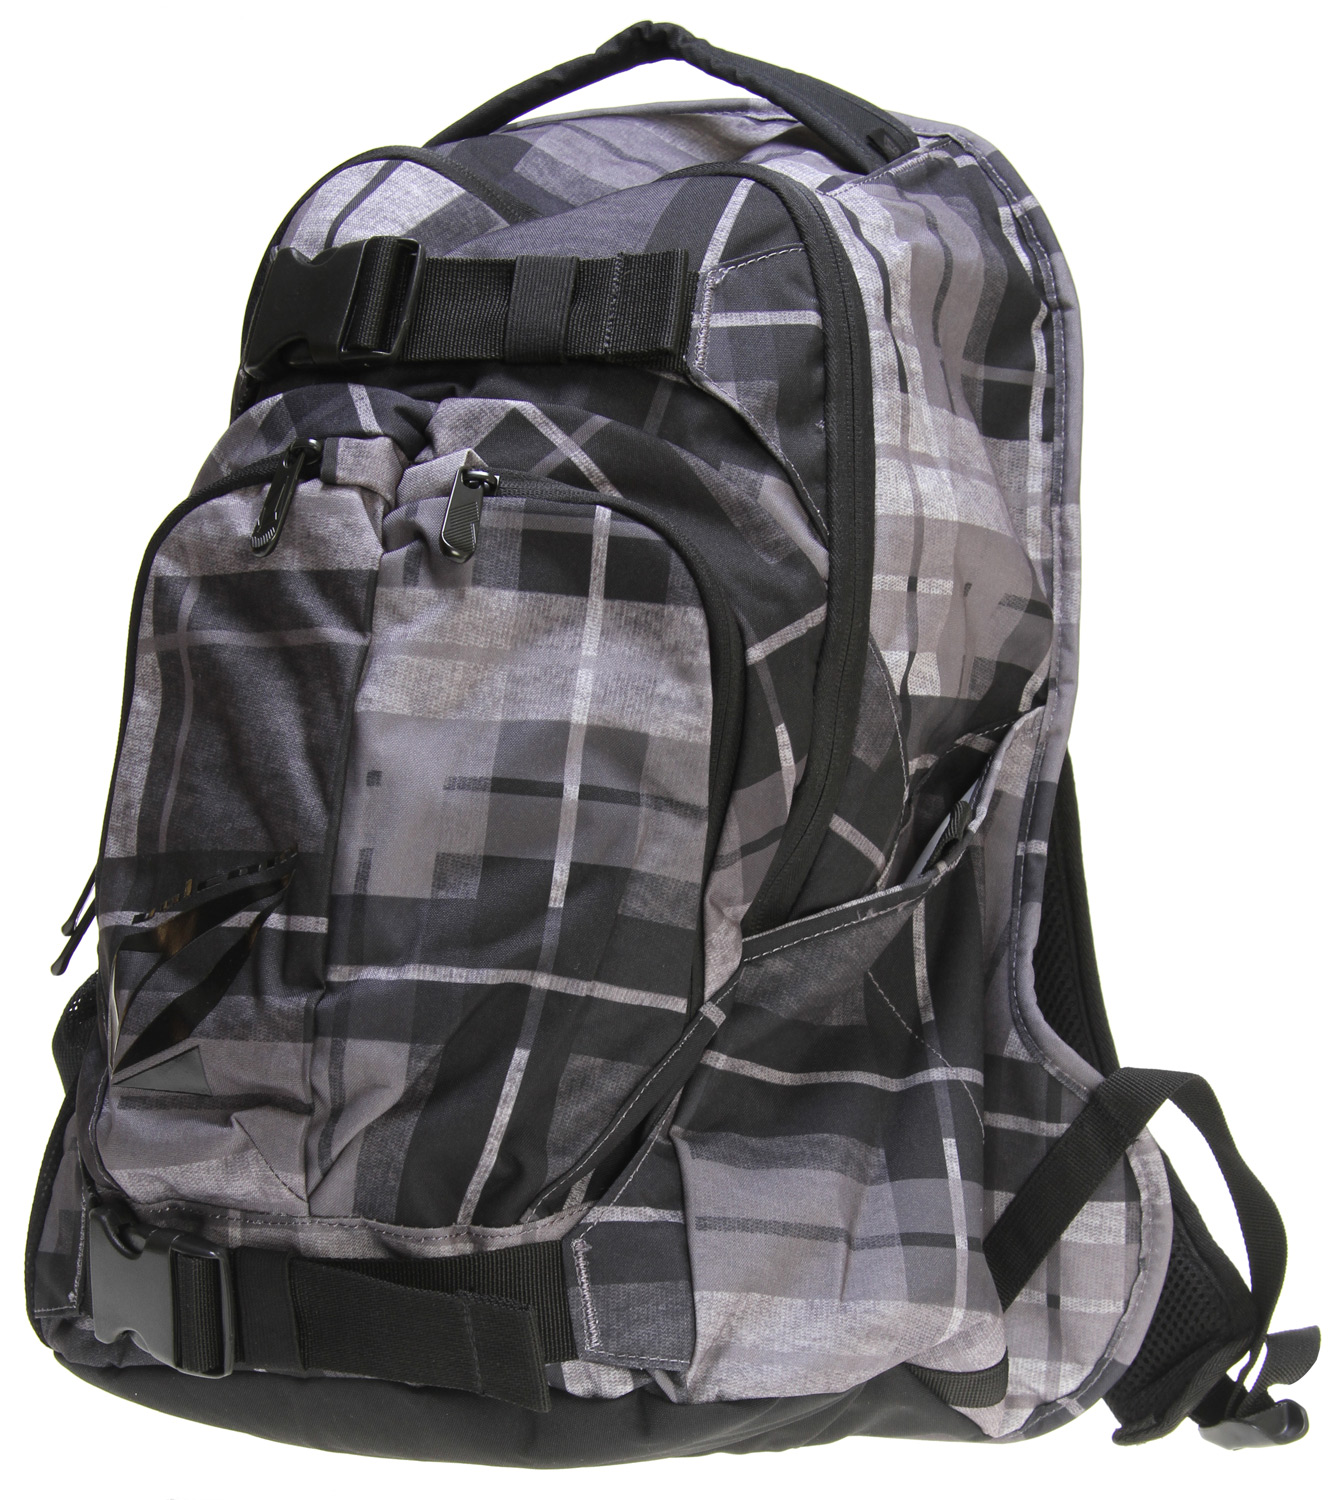 "Surf Key Features of the Volcom Equilibrium Stoneage Backpack: Volume: 1891in [31L] Dimensions: 19.75 x 13 x 7.75"" [50 x 33 x 20cm] Weight: 1.5lb [0.66kg] Three compartment backpack with 'Volcom/Stone' gel prints 300D polyester - $35.95"